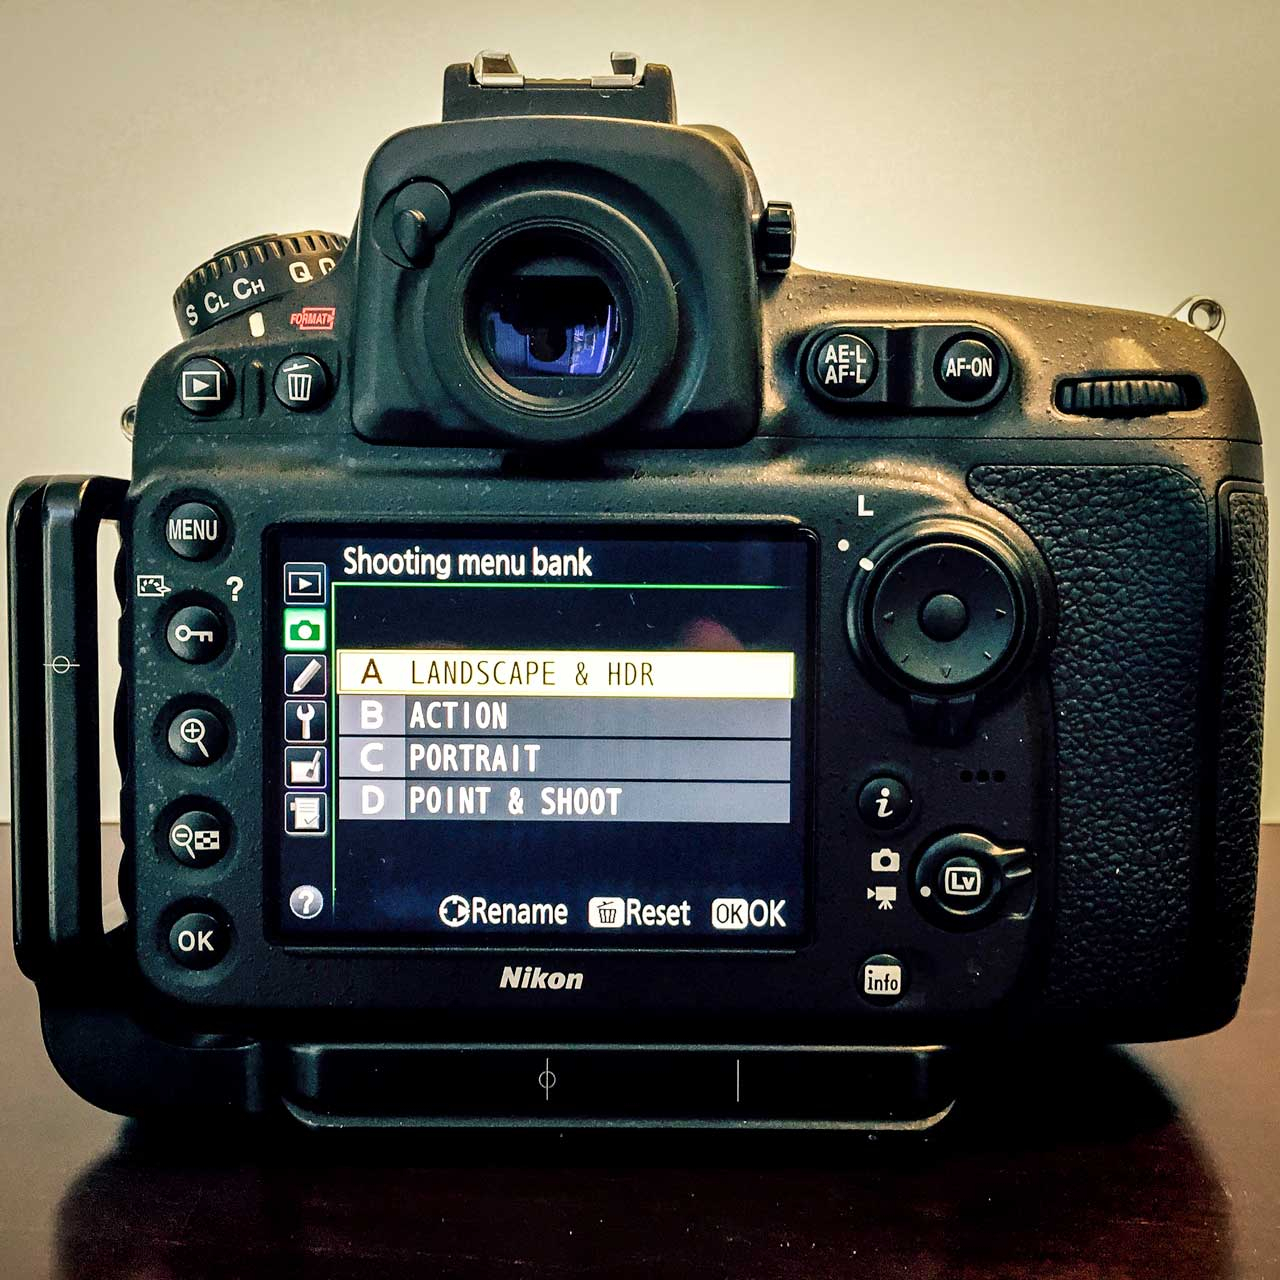 Nikon D800 Settings Spreadsheet Regarding Nikon D810 Setup And Configuration  Mike Heller Photography